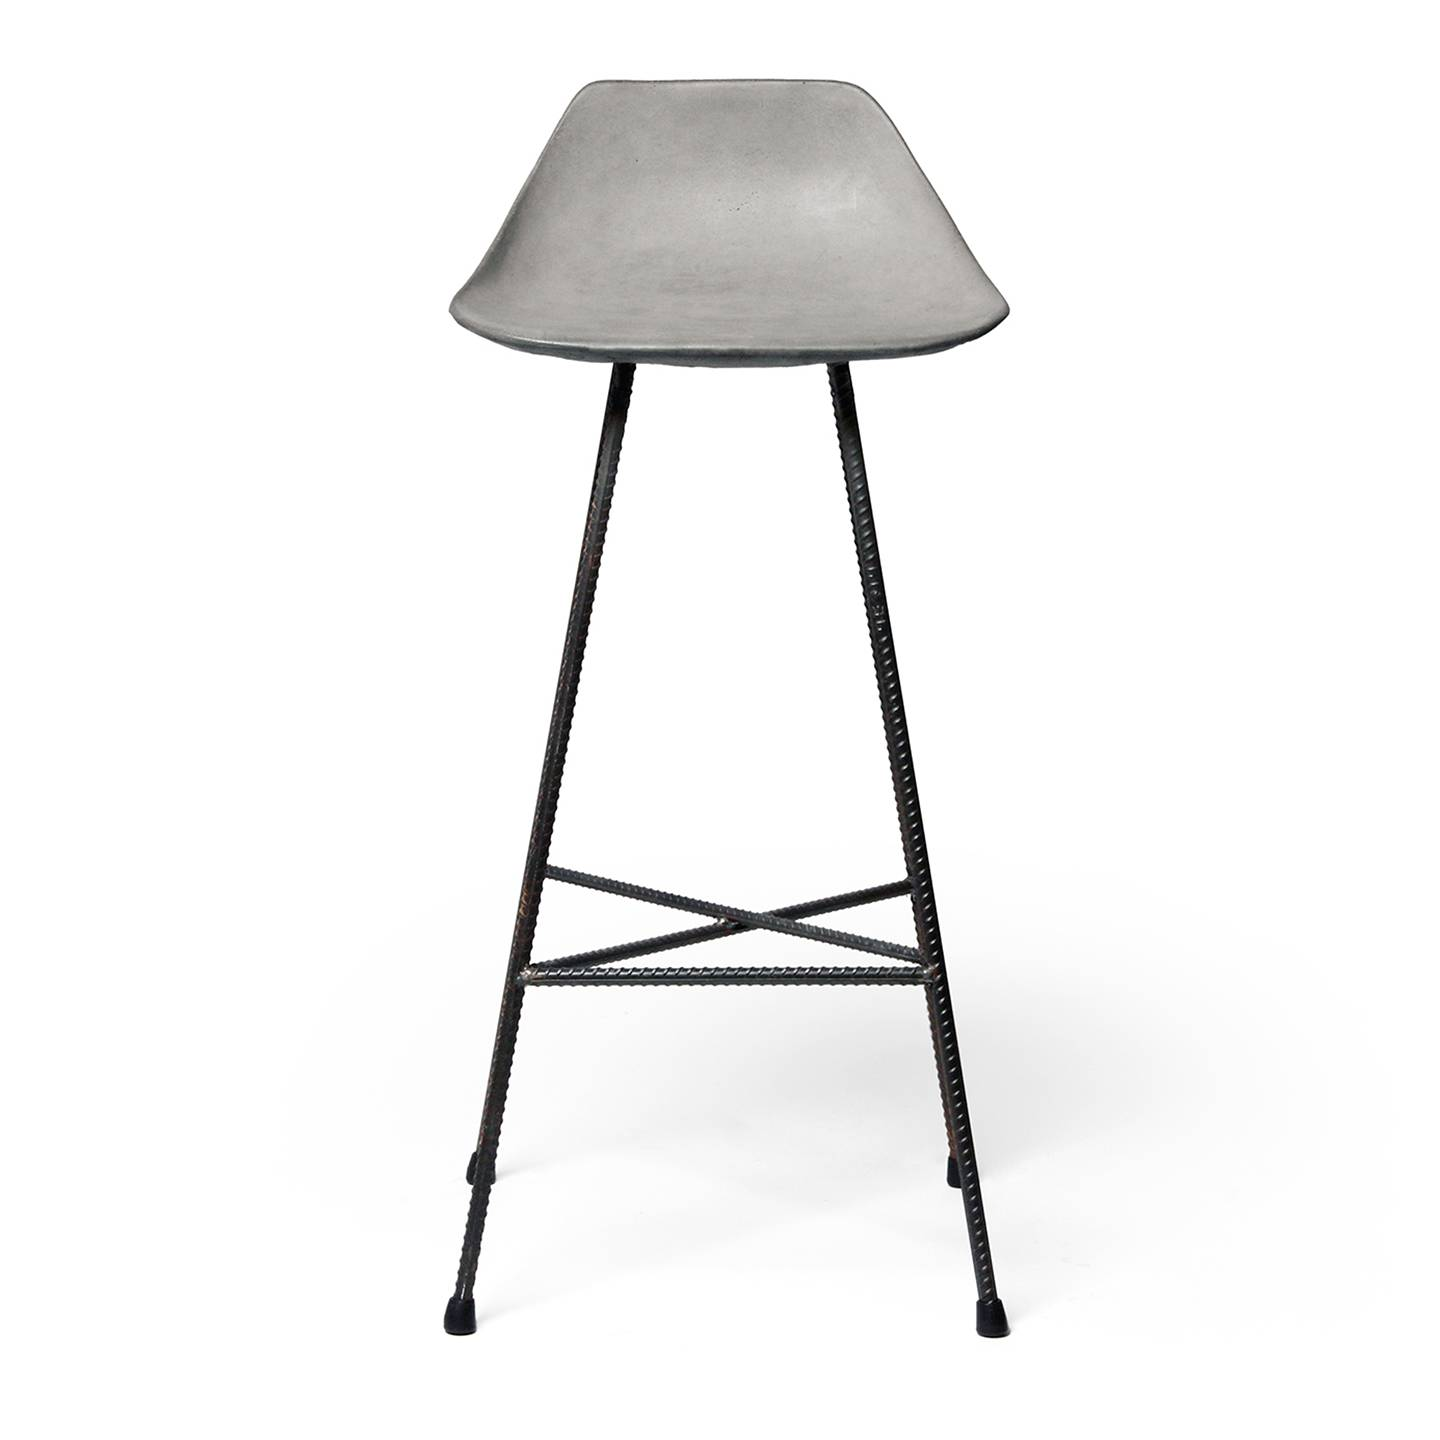 dl-09126-hauteville-bar-chair-01